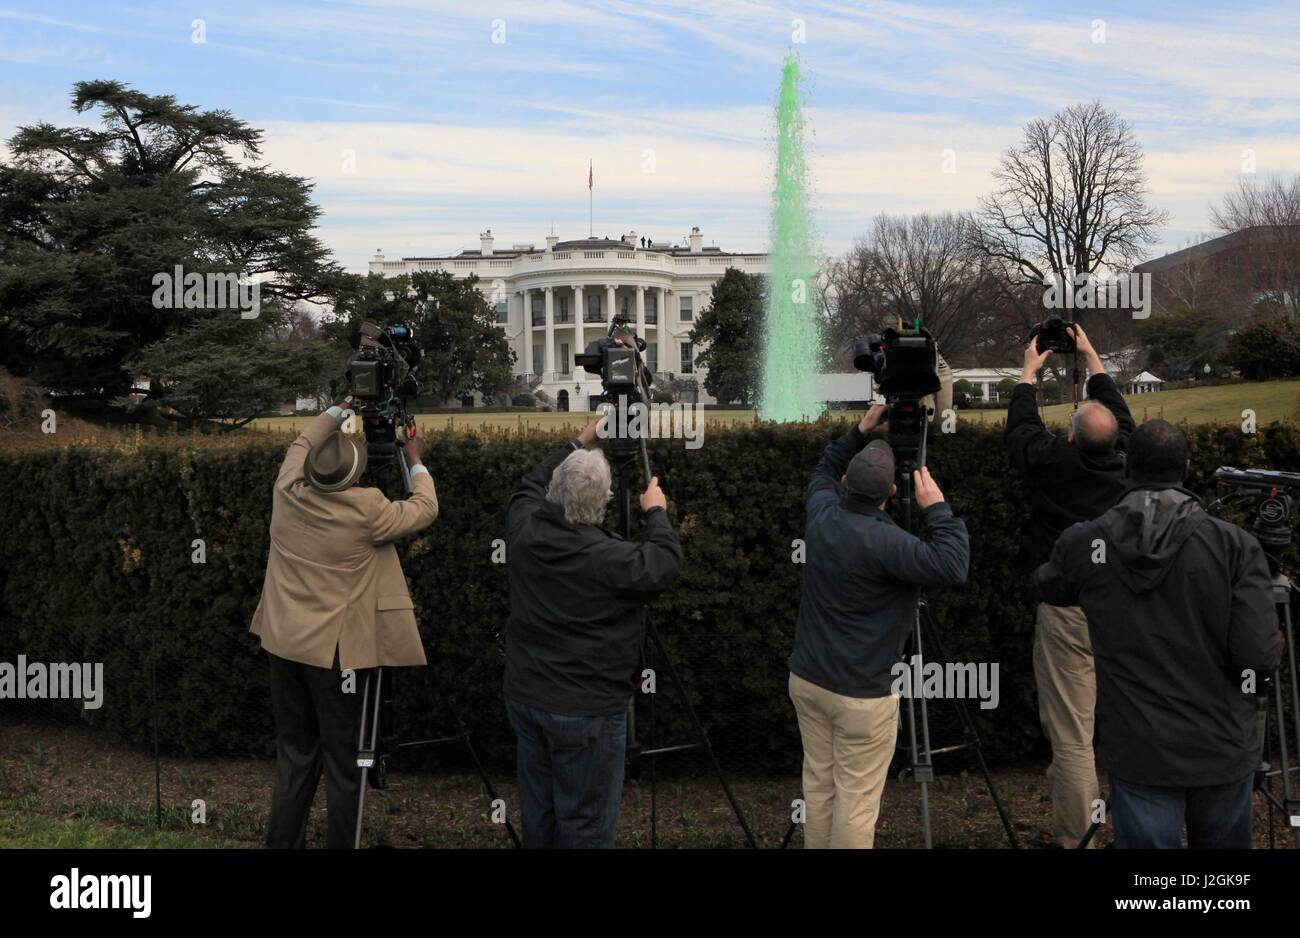 St. Patrick's Day, green dye was added to the water of the fountain on the South Lawn of the White House, Washington - Stock Image